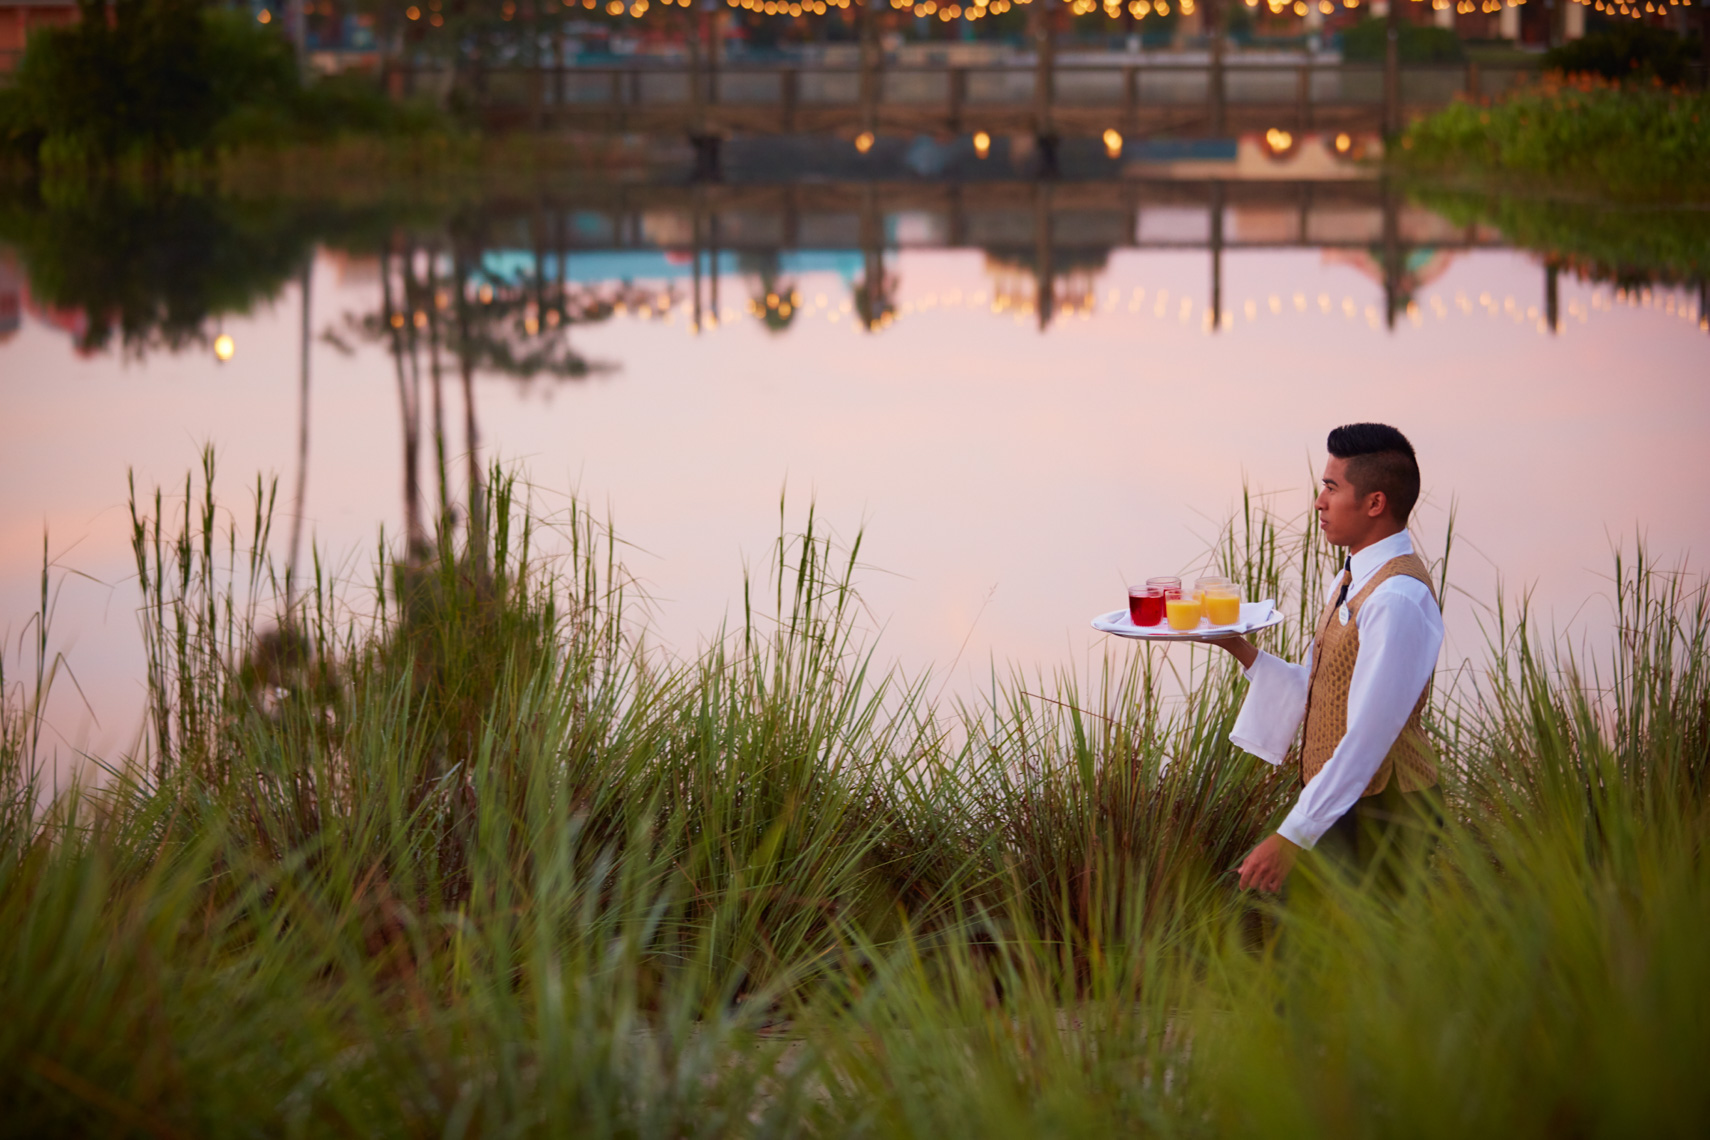 Waiter in white shirt carrying food tray along garden path at dusk by the lagoon San Francisco lifestyle photographer